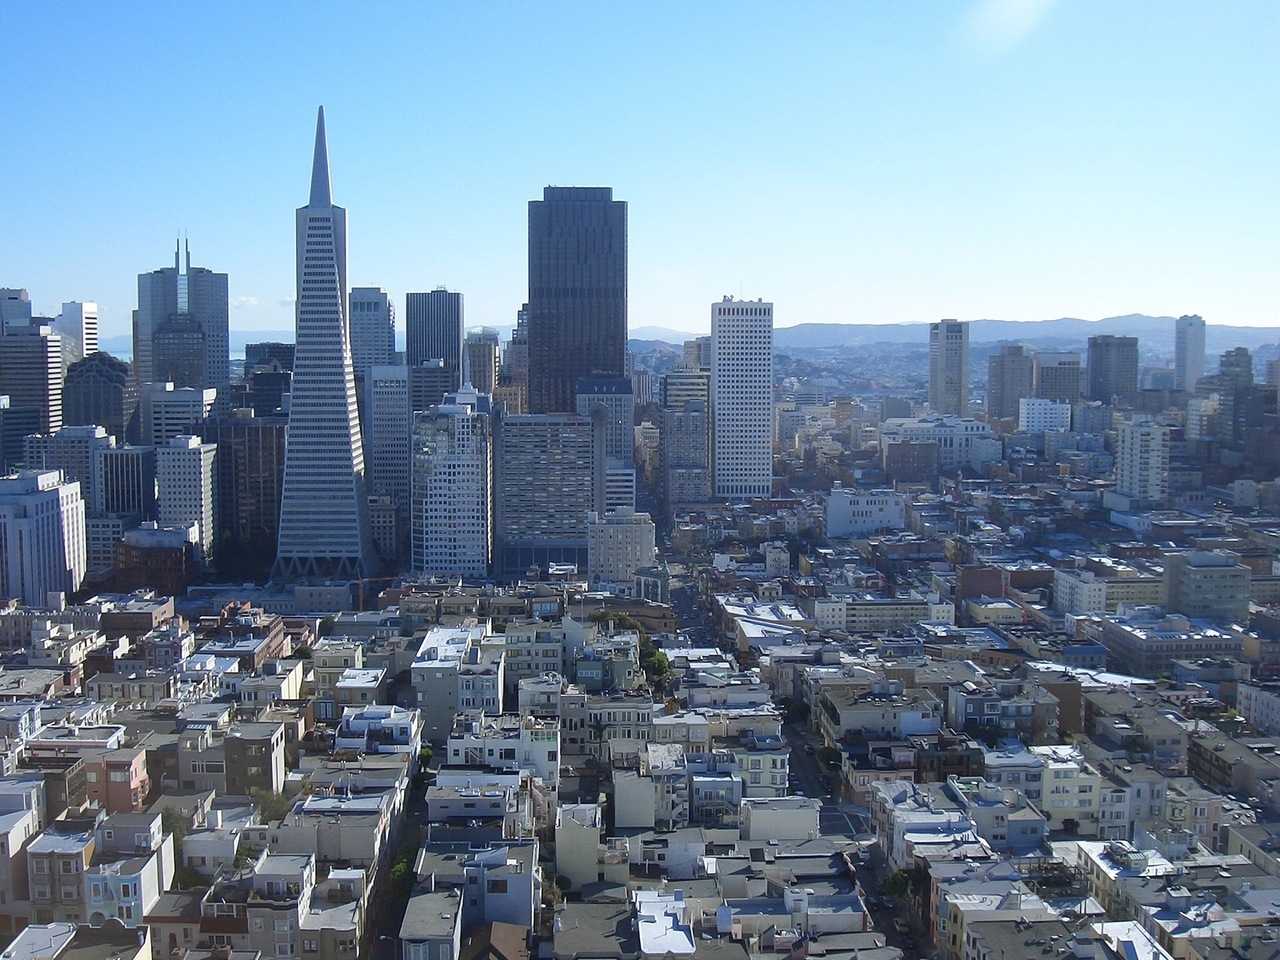 san-francisco-views-4-1446205-1280x960